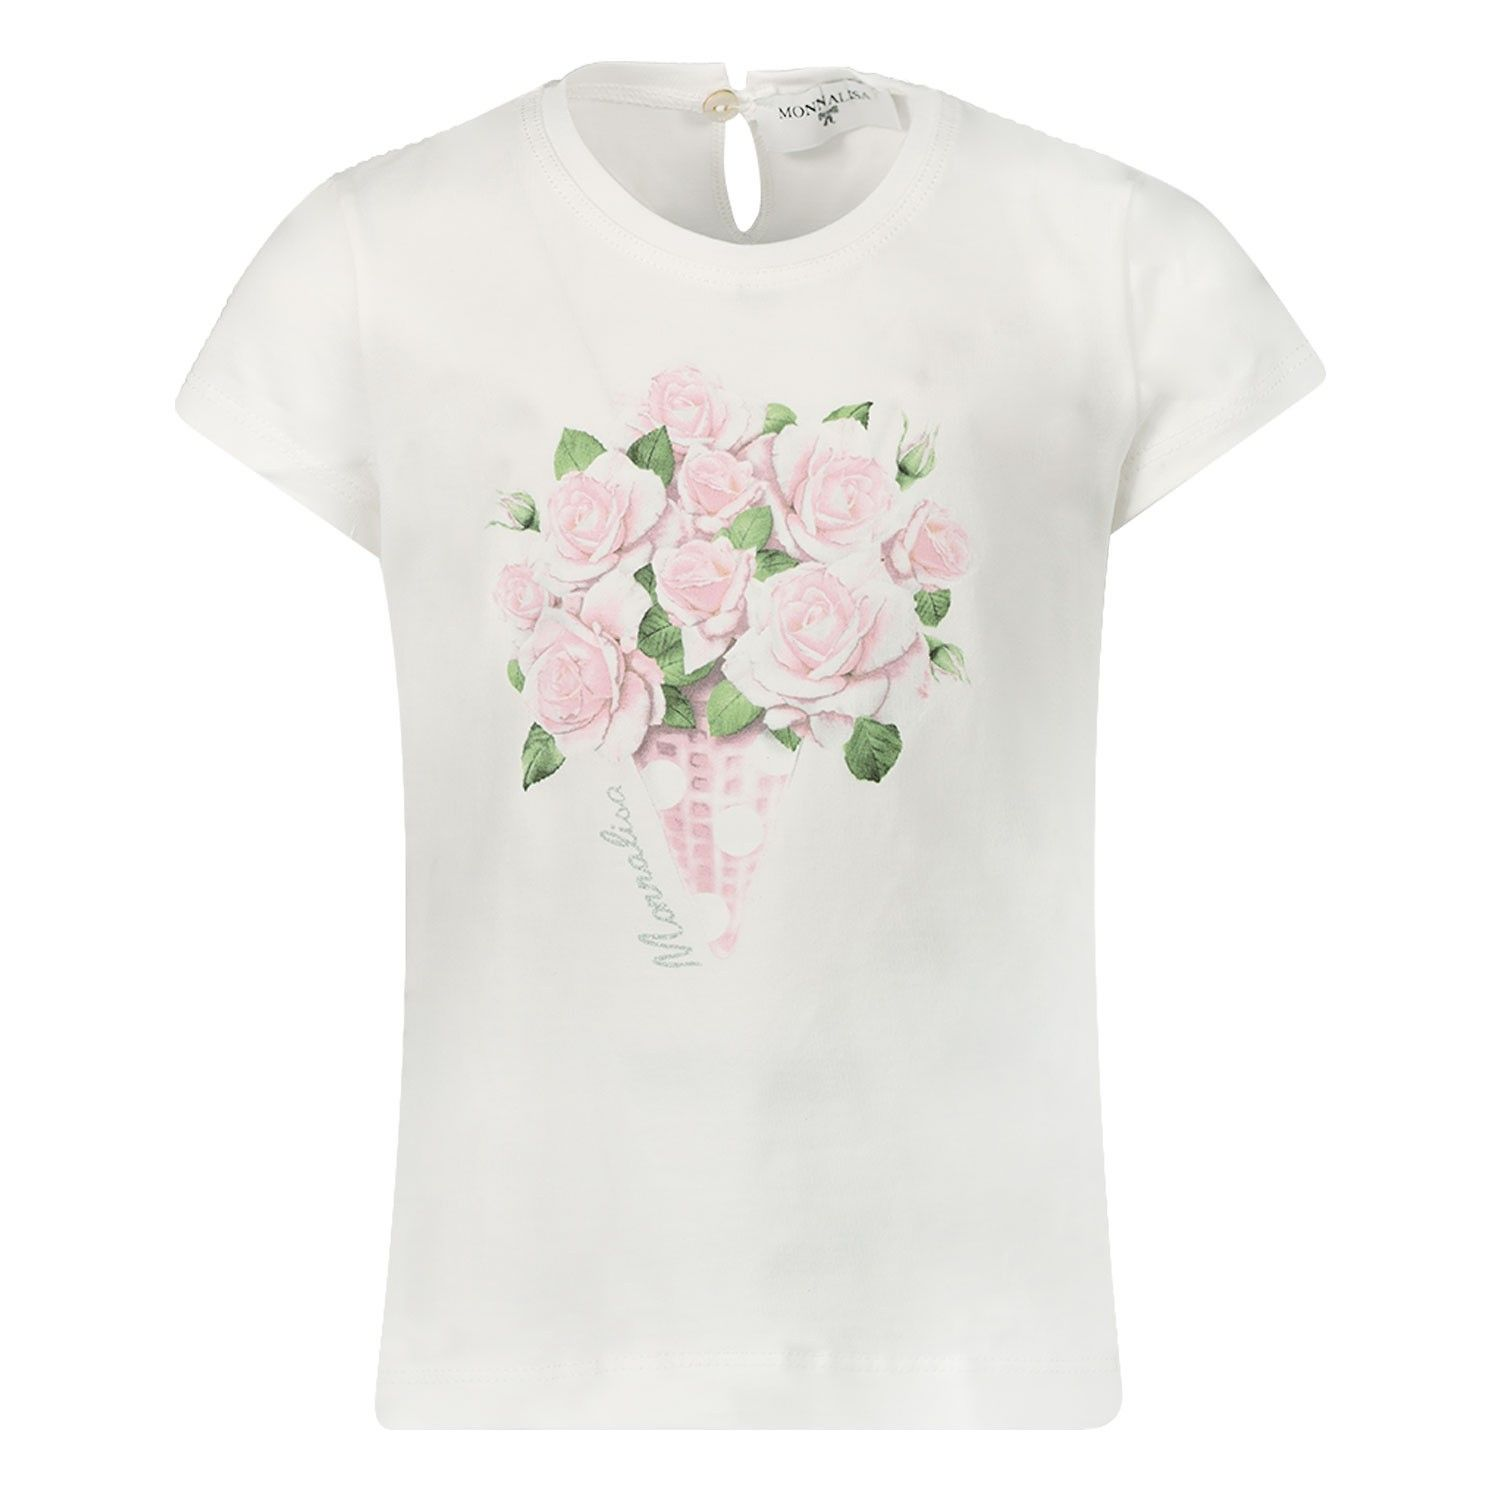 Picture of MonnaLisa 315627PA baby shirt off white